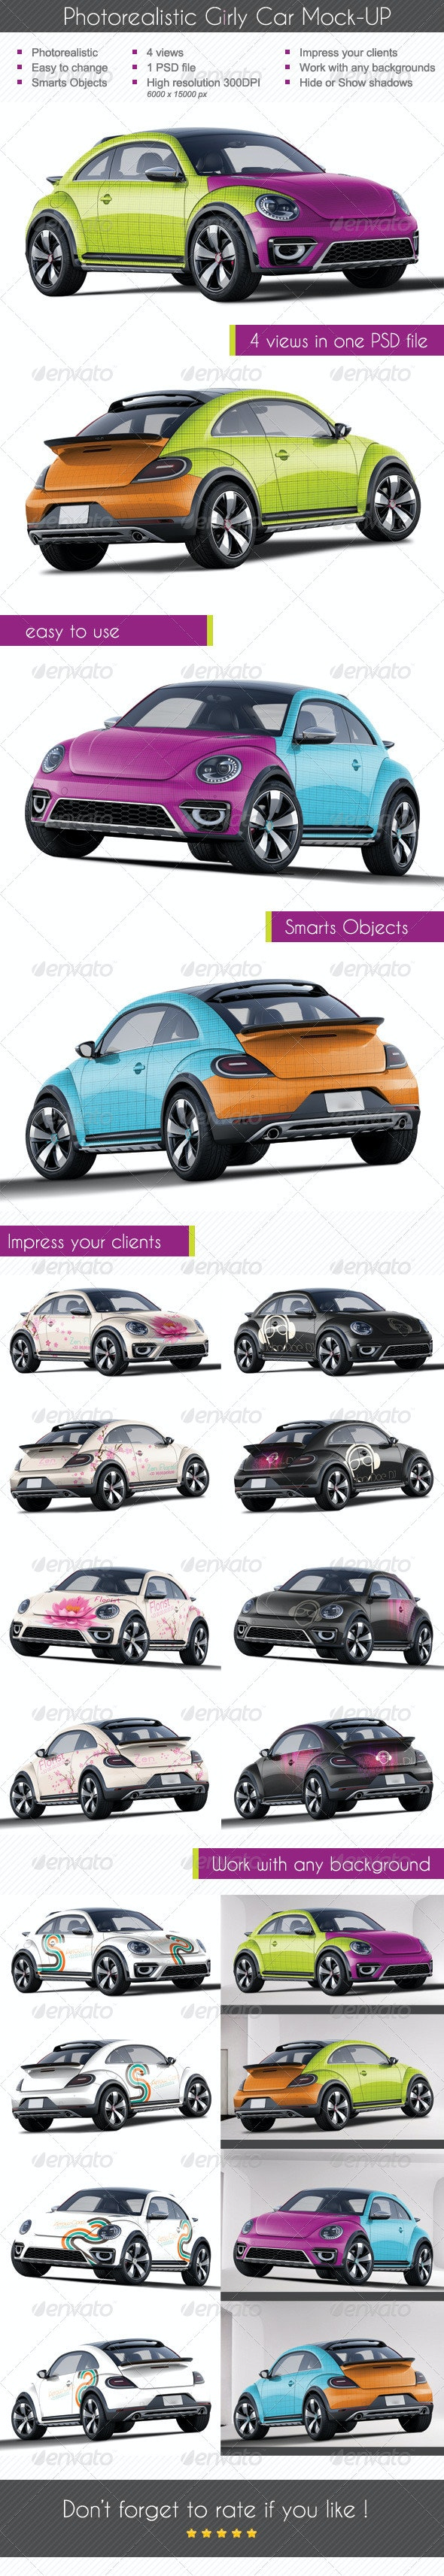 Photorealistic Girly Car Mock-up - Vehicle Wraps Print